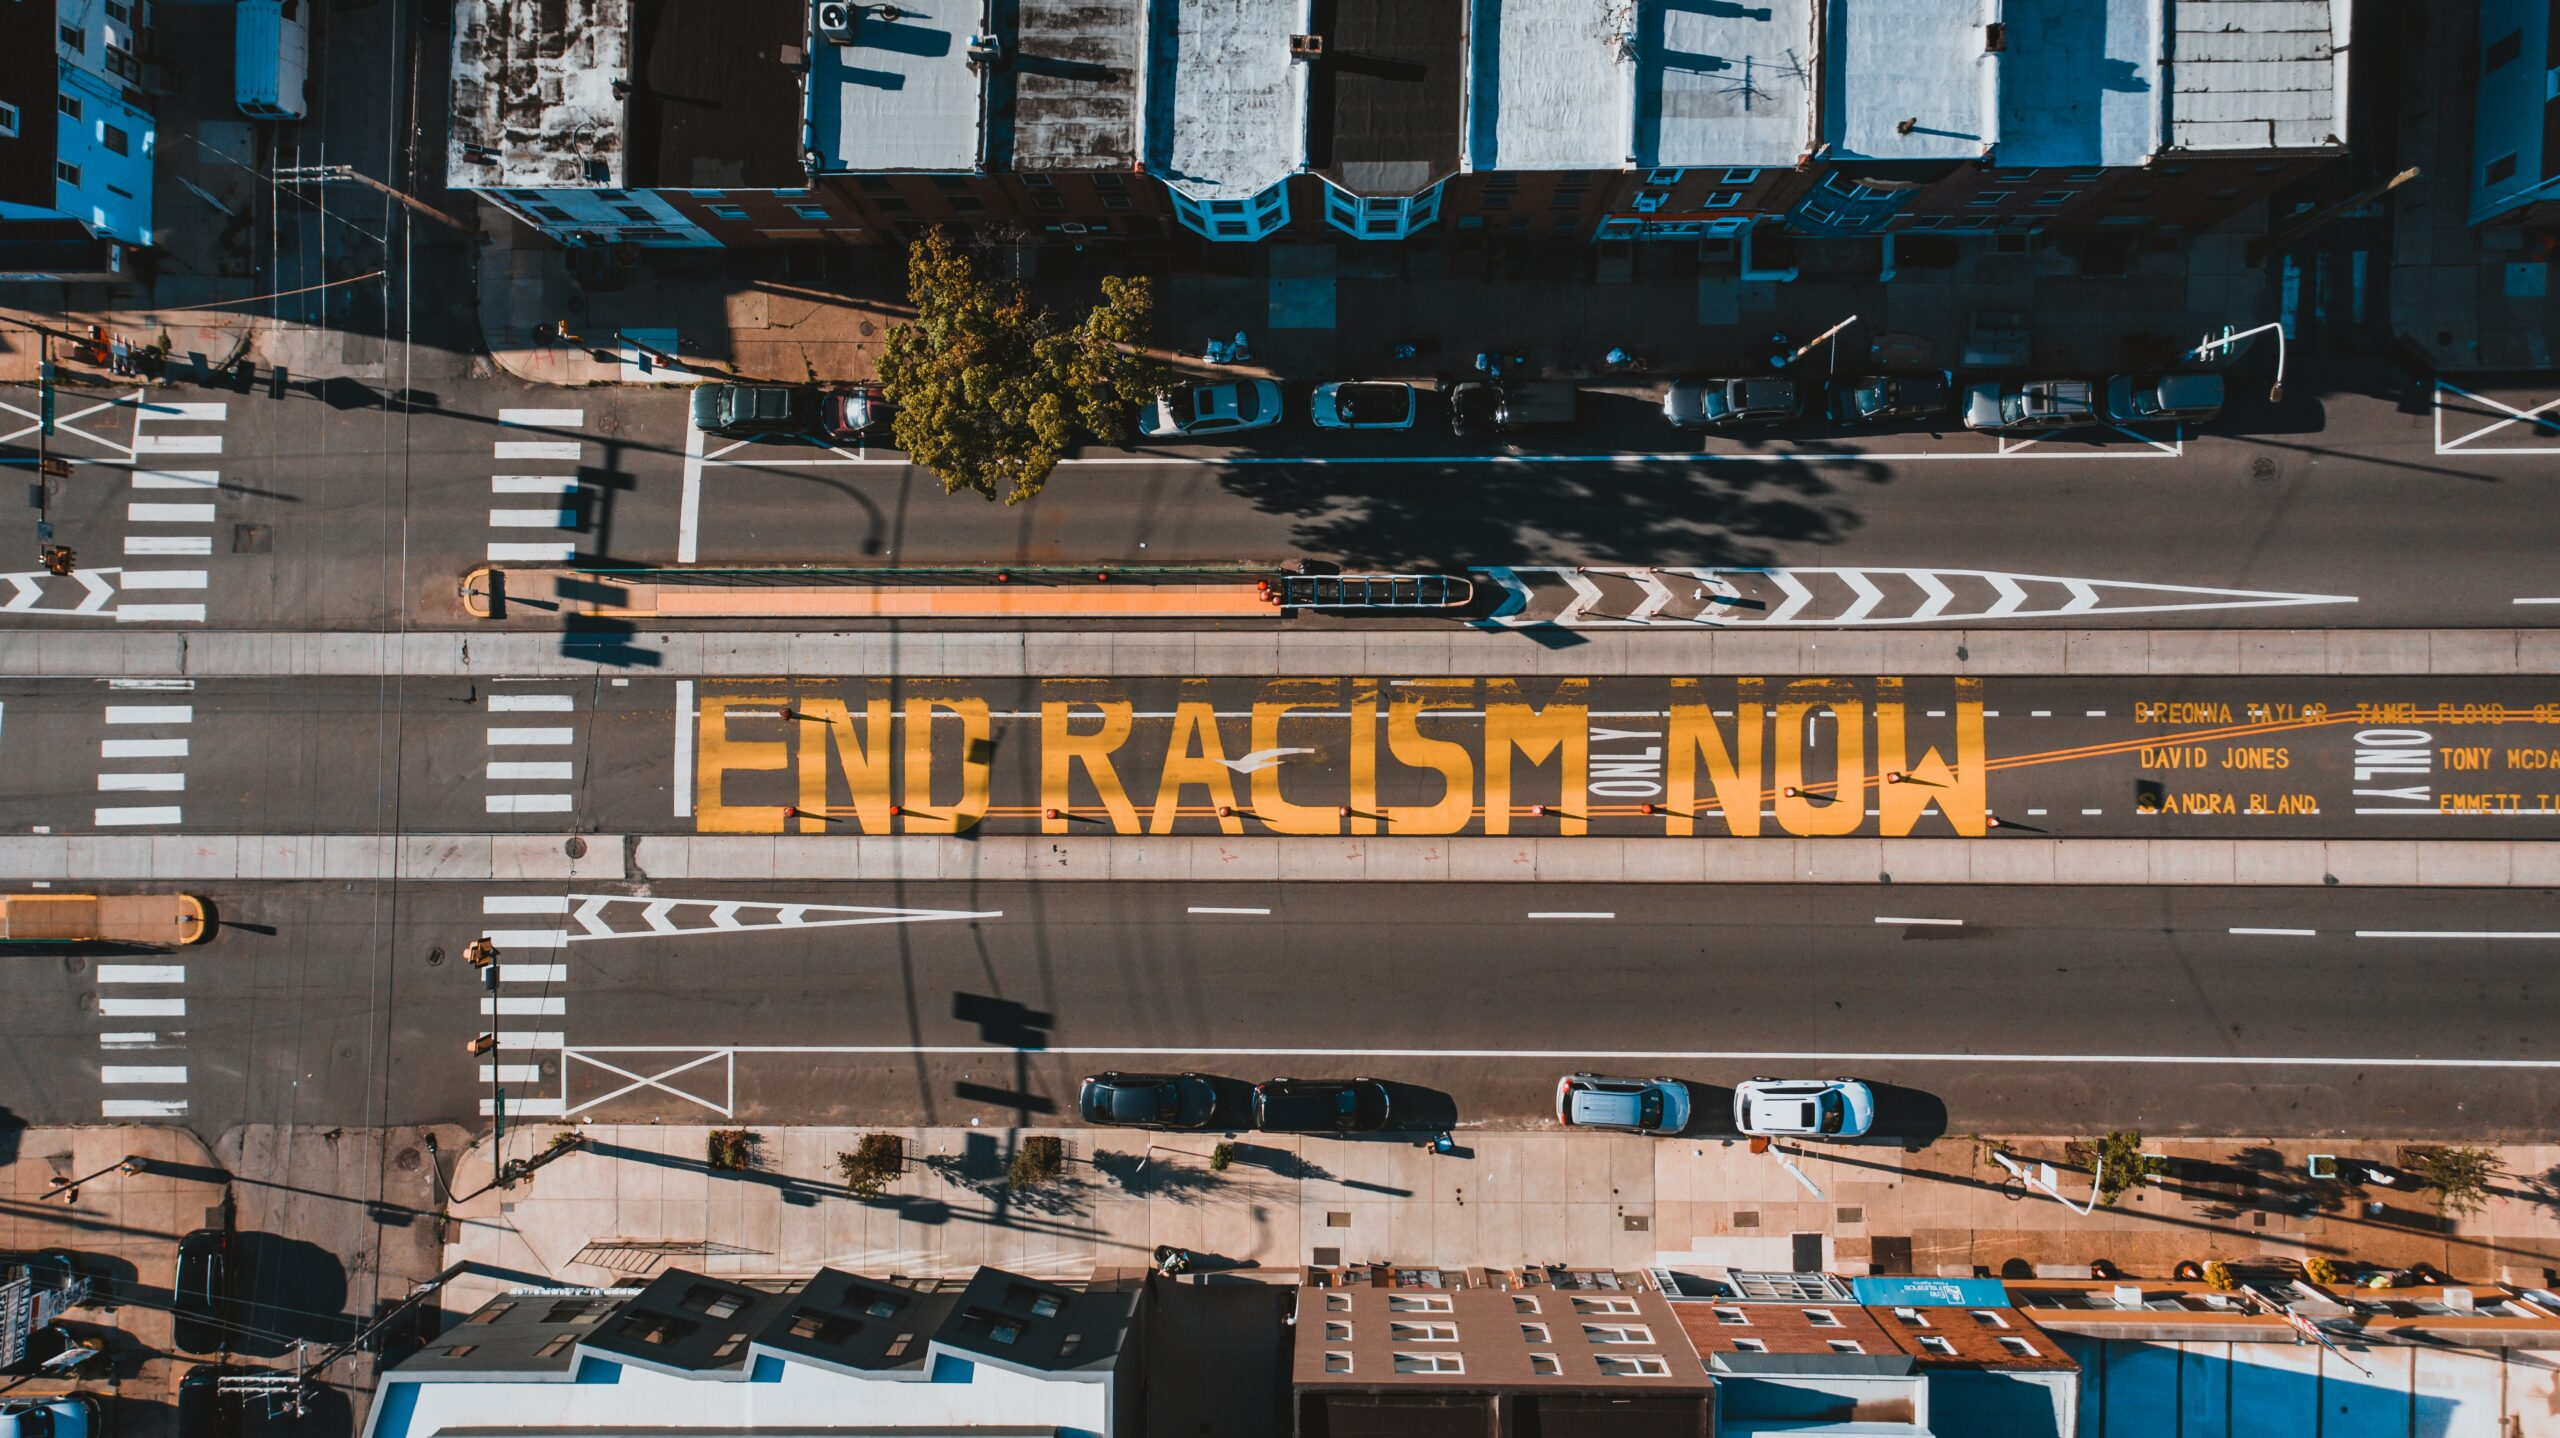 End Racism Now Mural